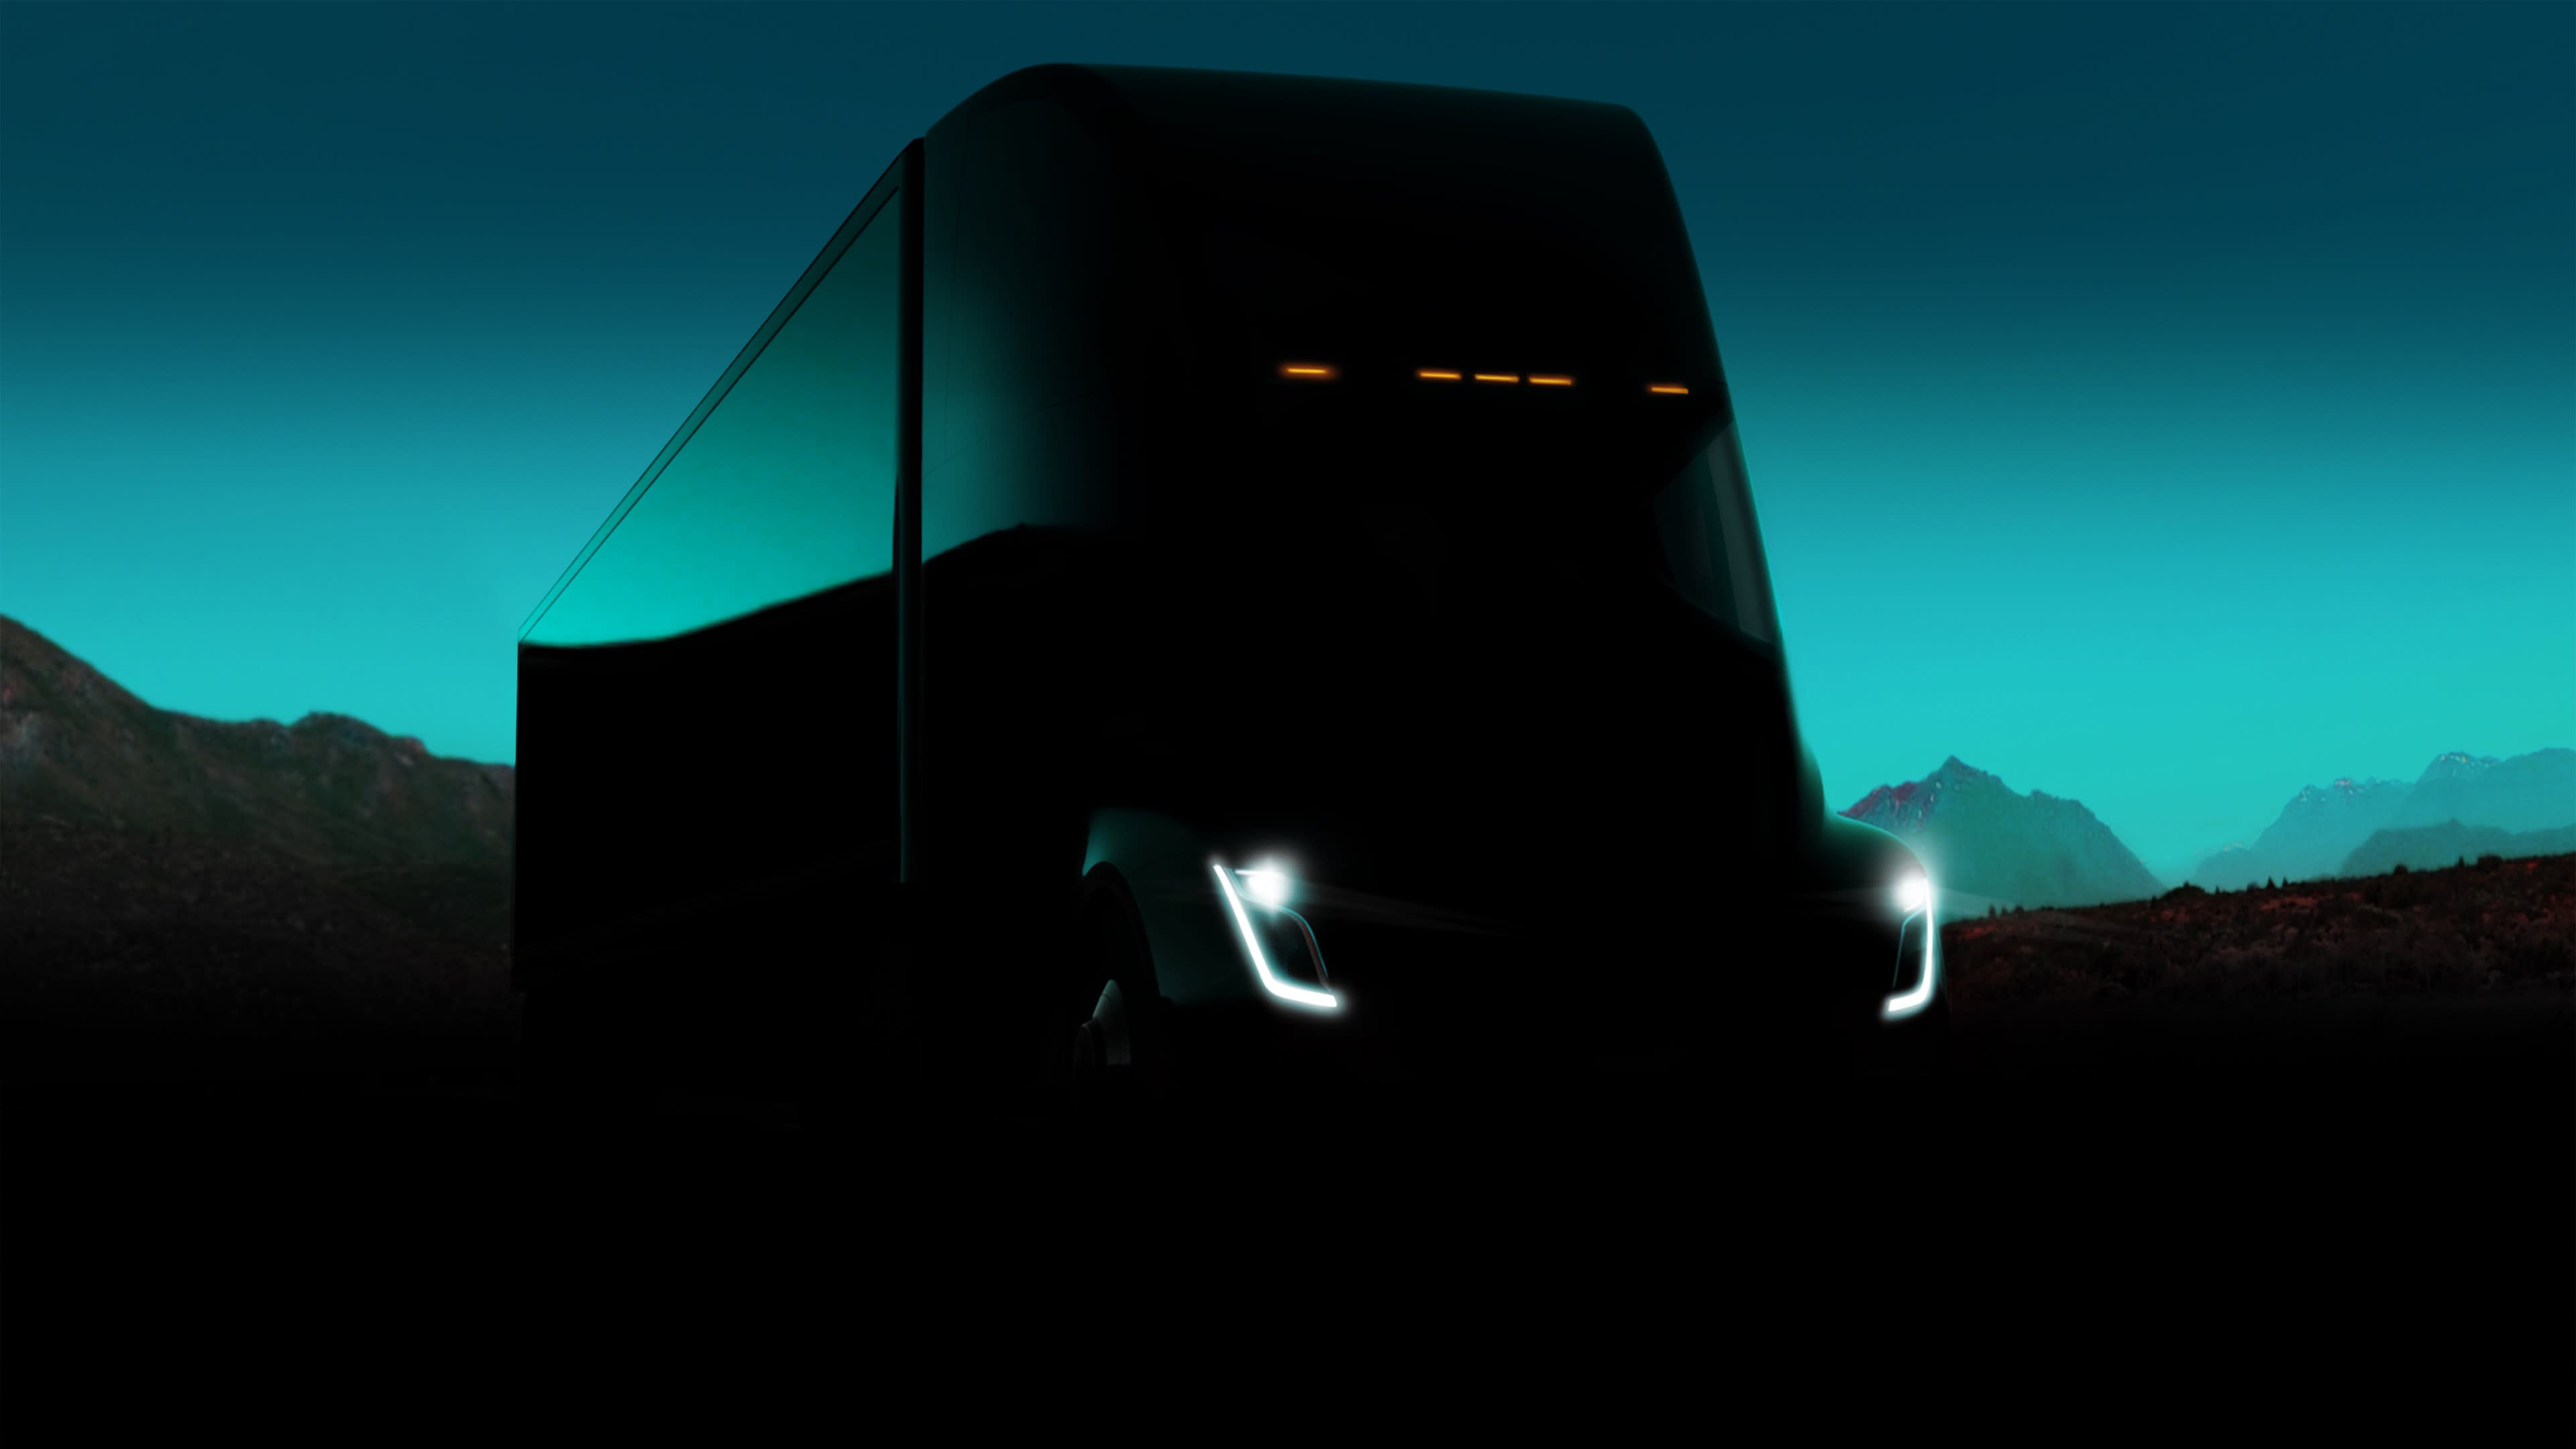 Everything You Need To Know About Tesla's New Electric Semi Truck